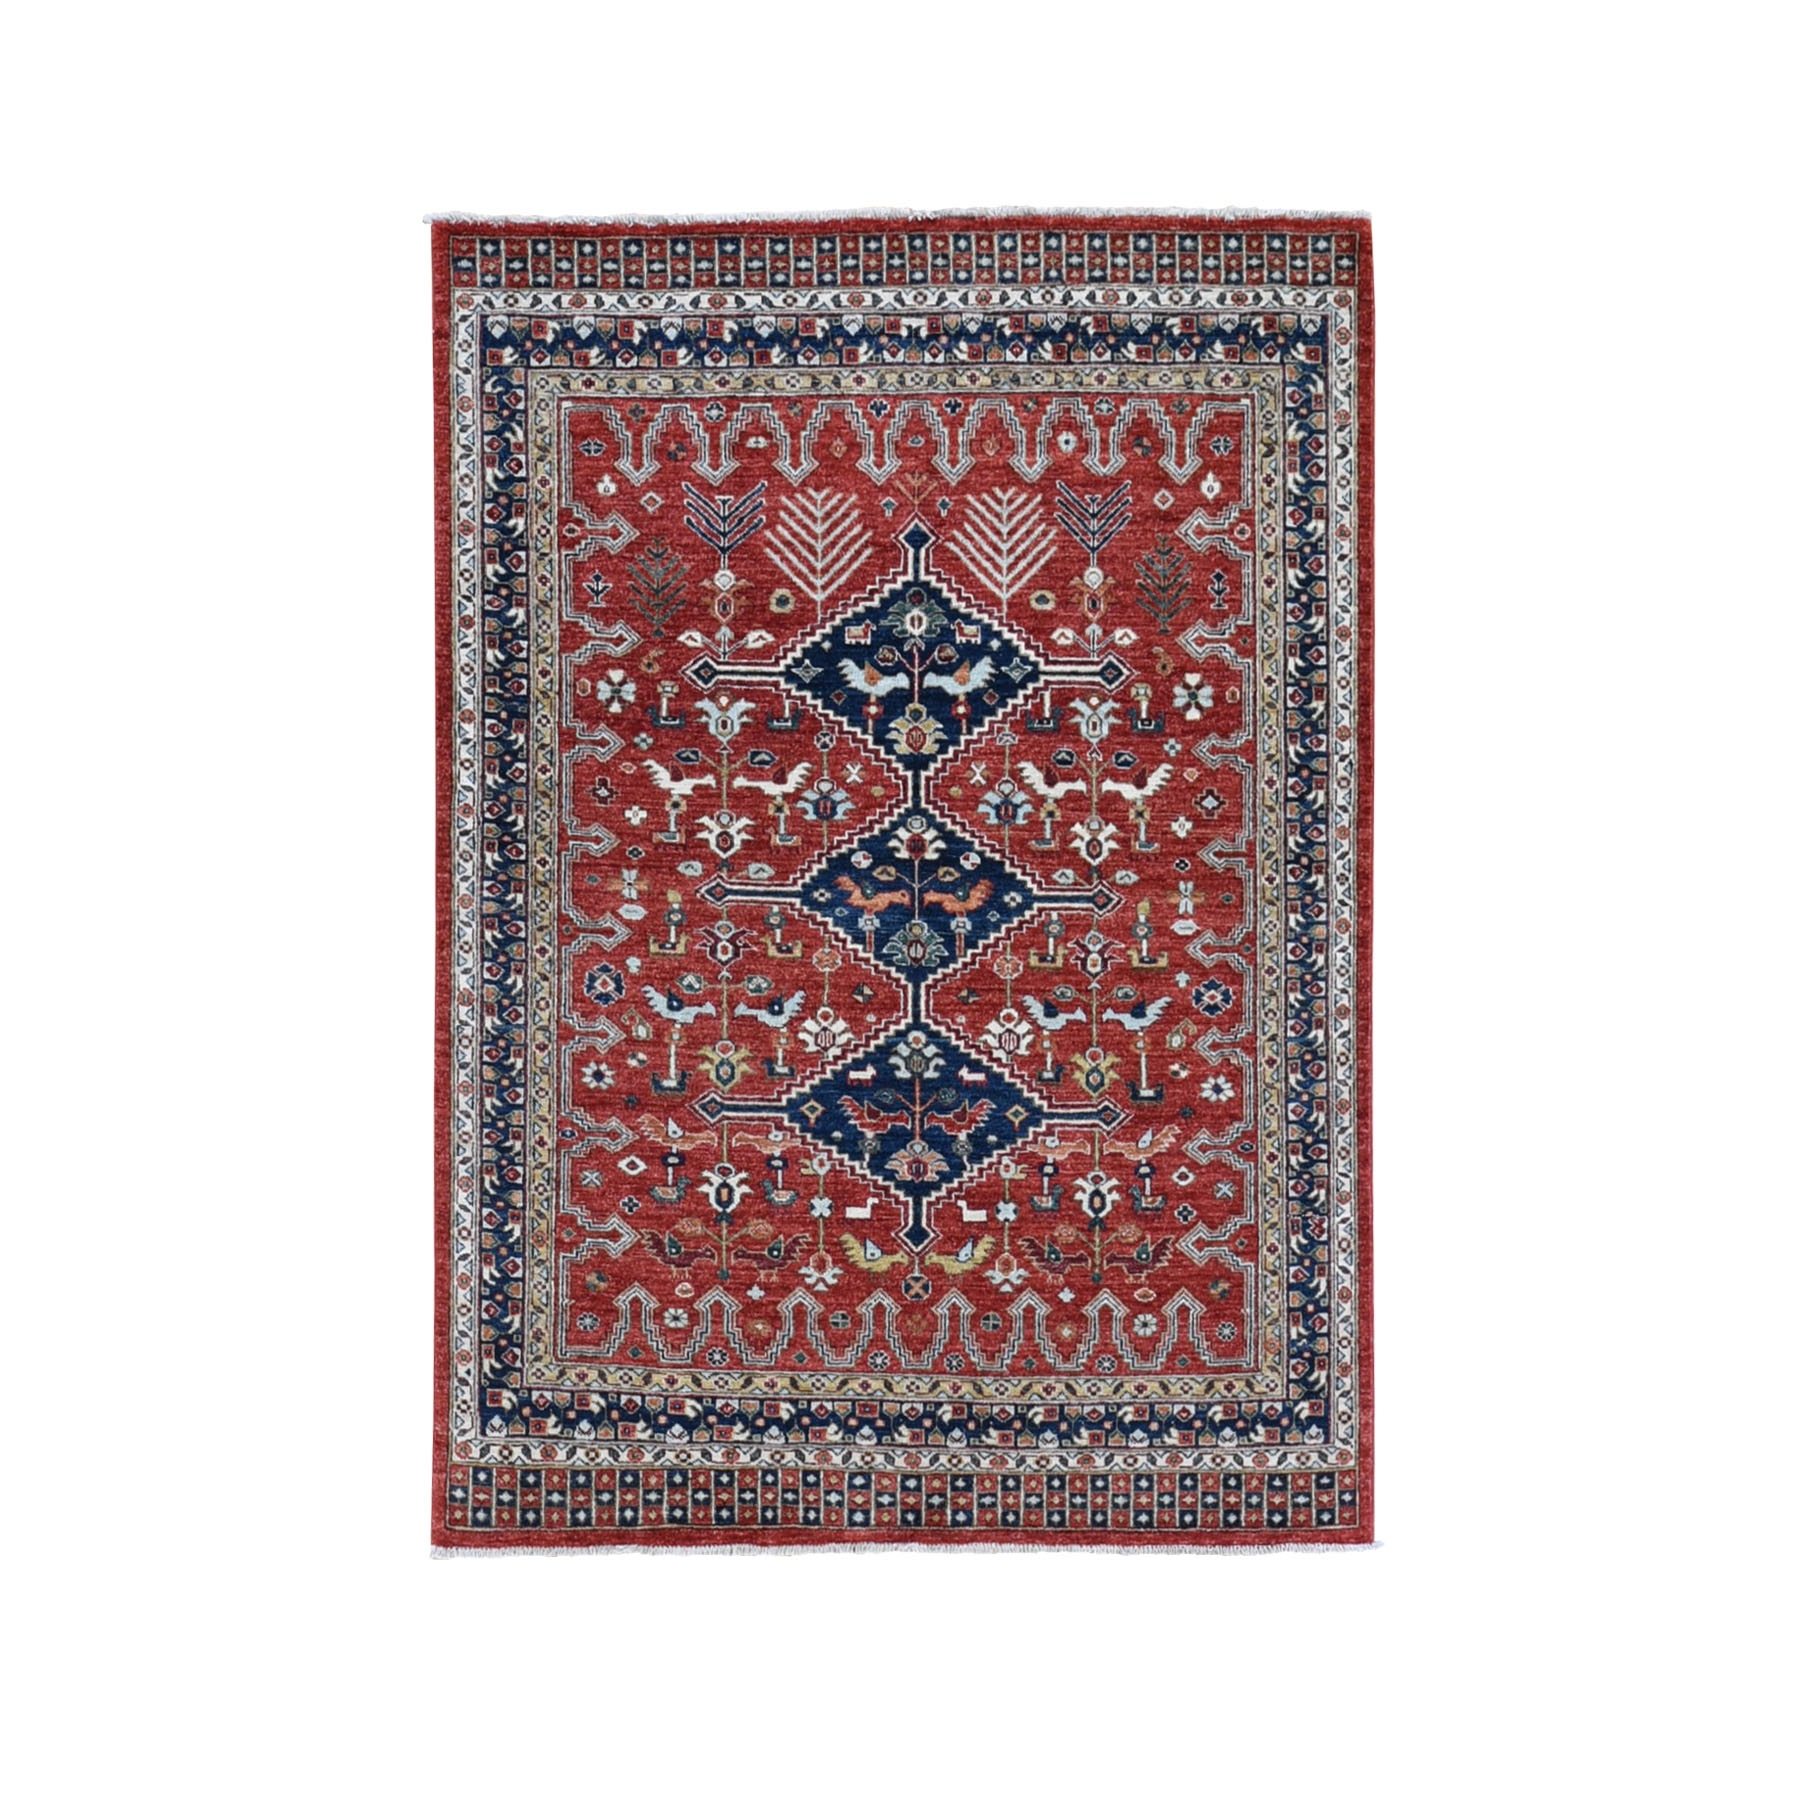 "4'10""x6'6"" Peshawar with Shiraz Design Tomato Red, Birds Pure Wool Hand Woven Oriental Rug"